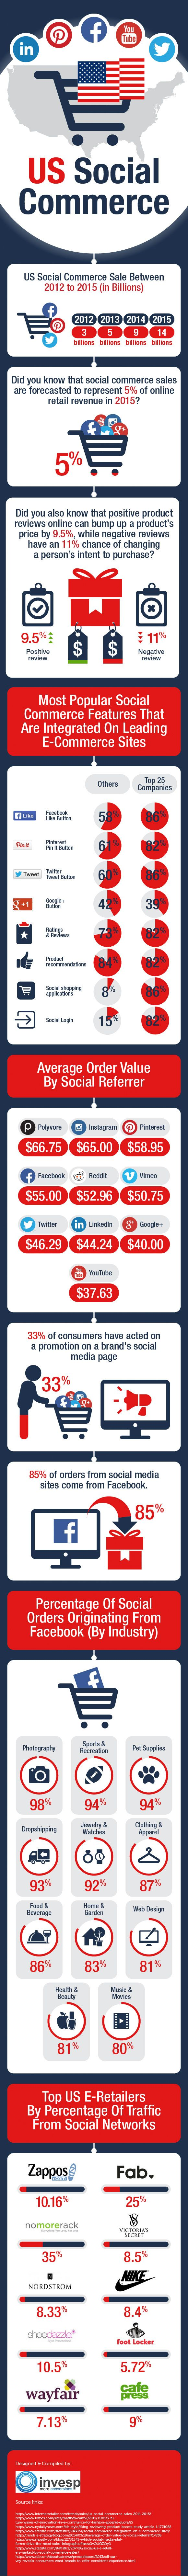 The United State of Social Commerce | Invesp [Infographic]